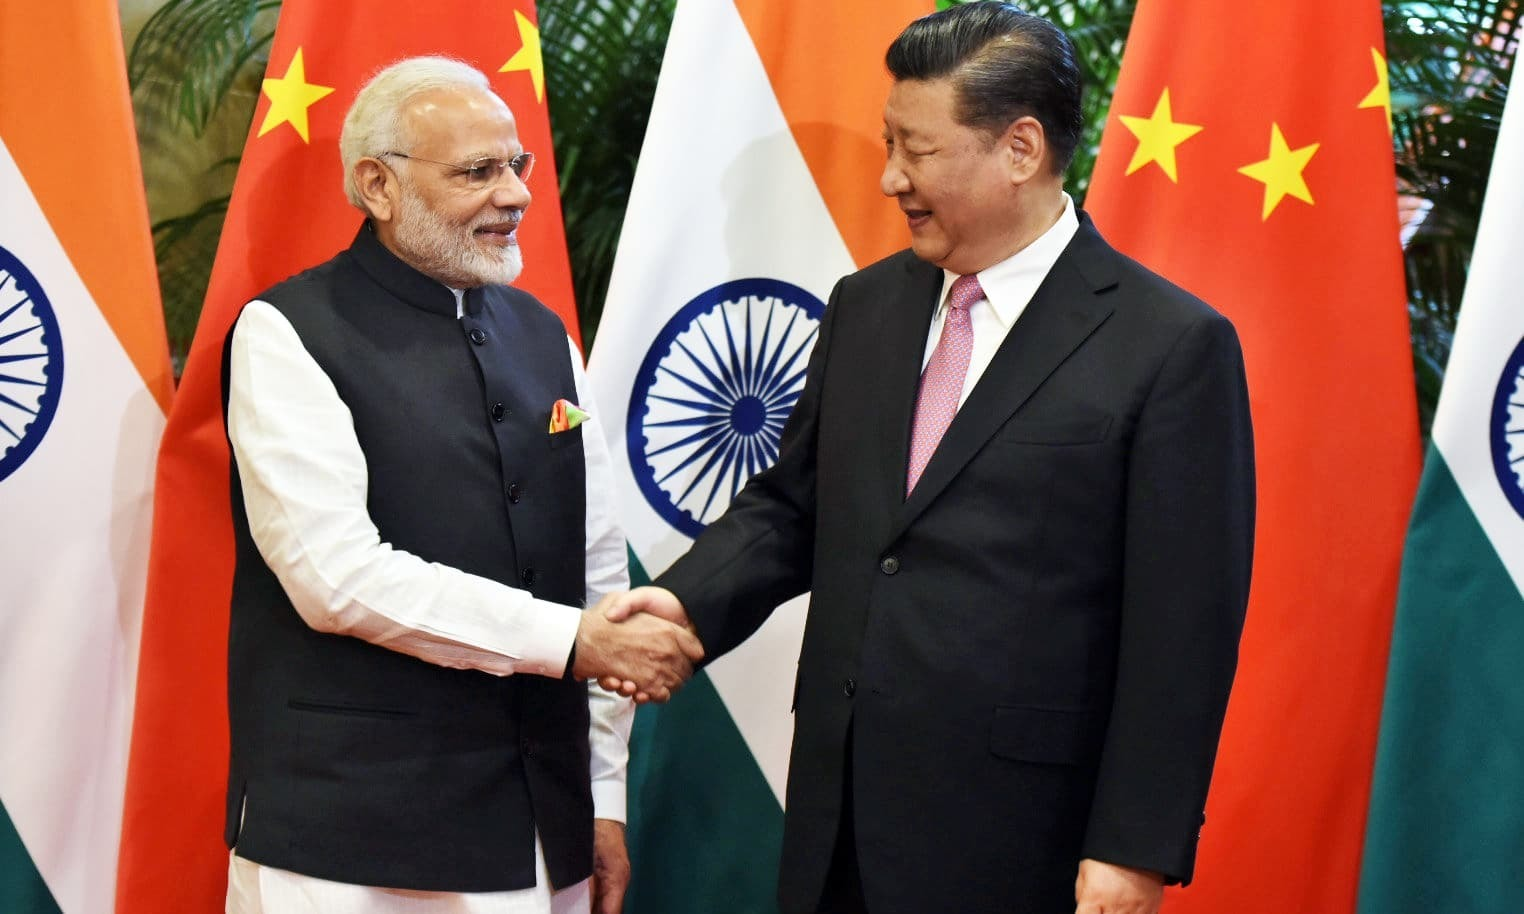 China irks India over held Kashmir two days before summit